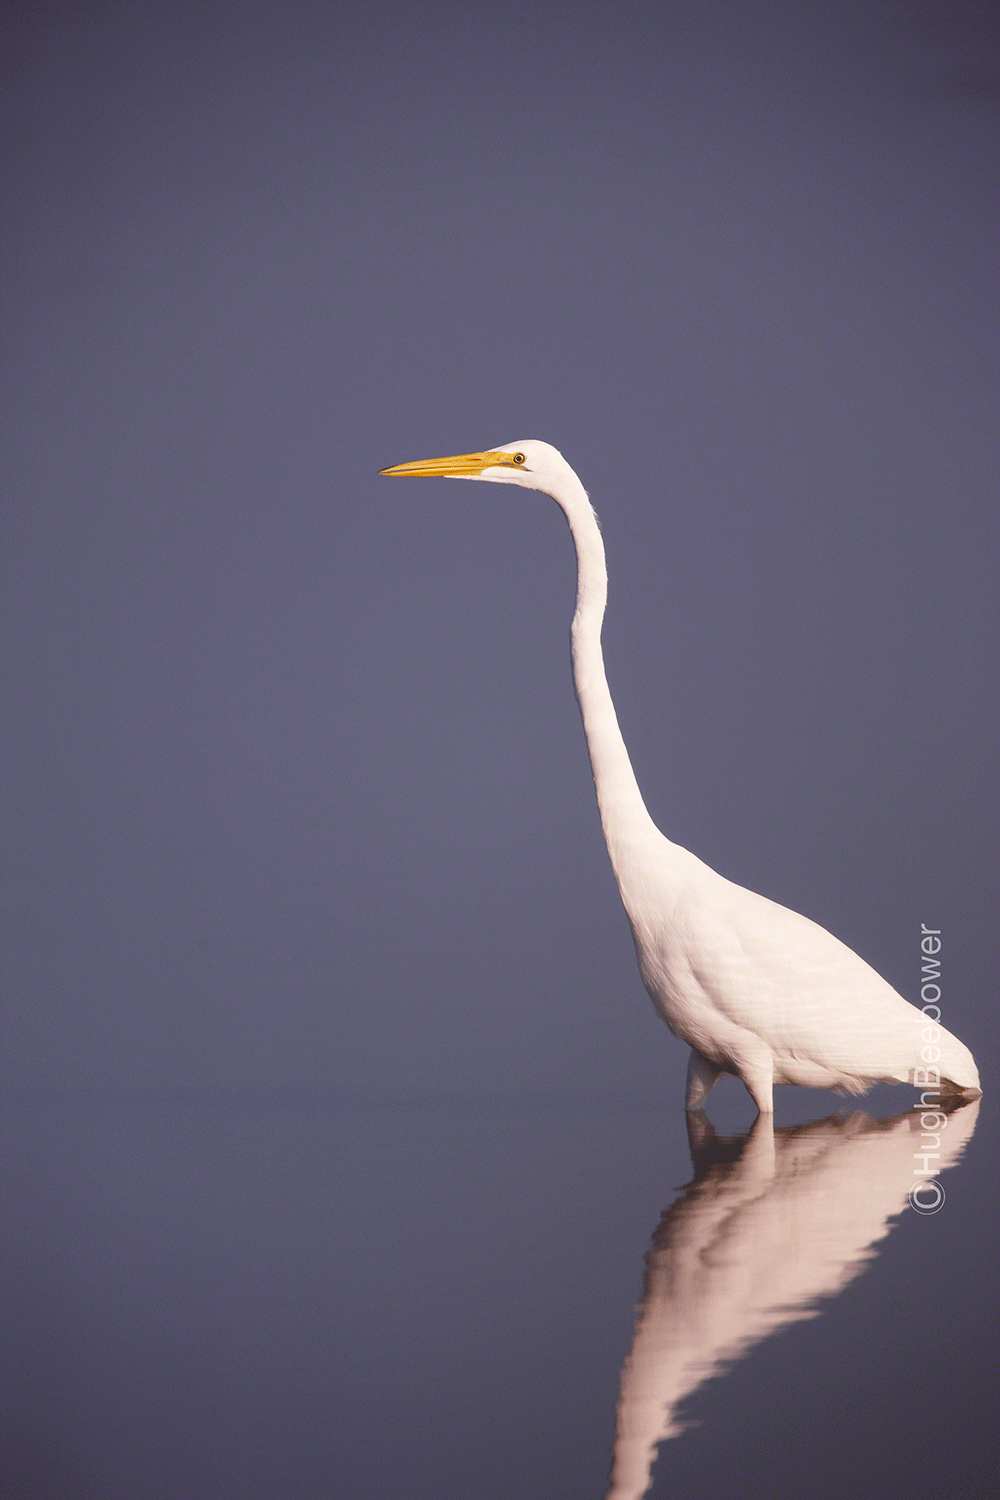 Great Egret | Beebower Productions